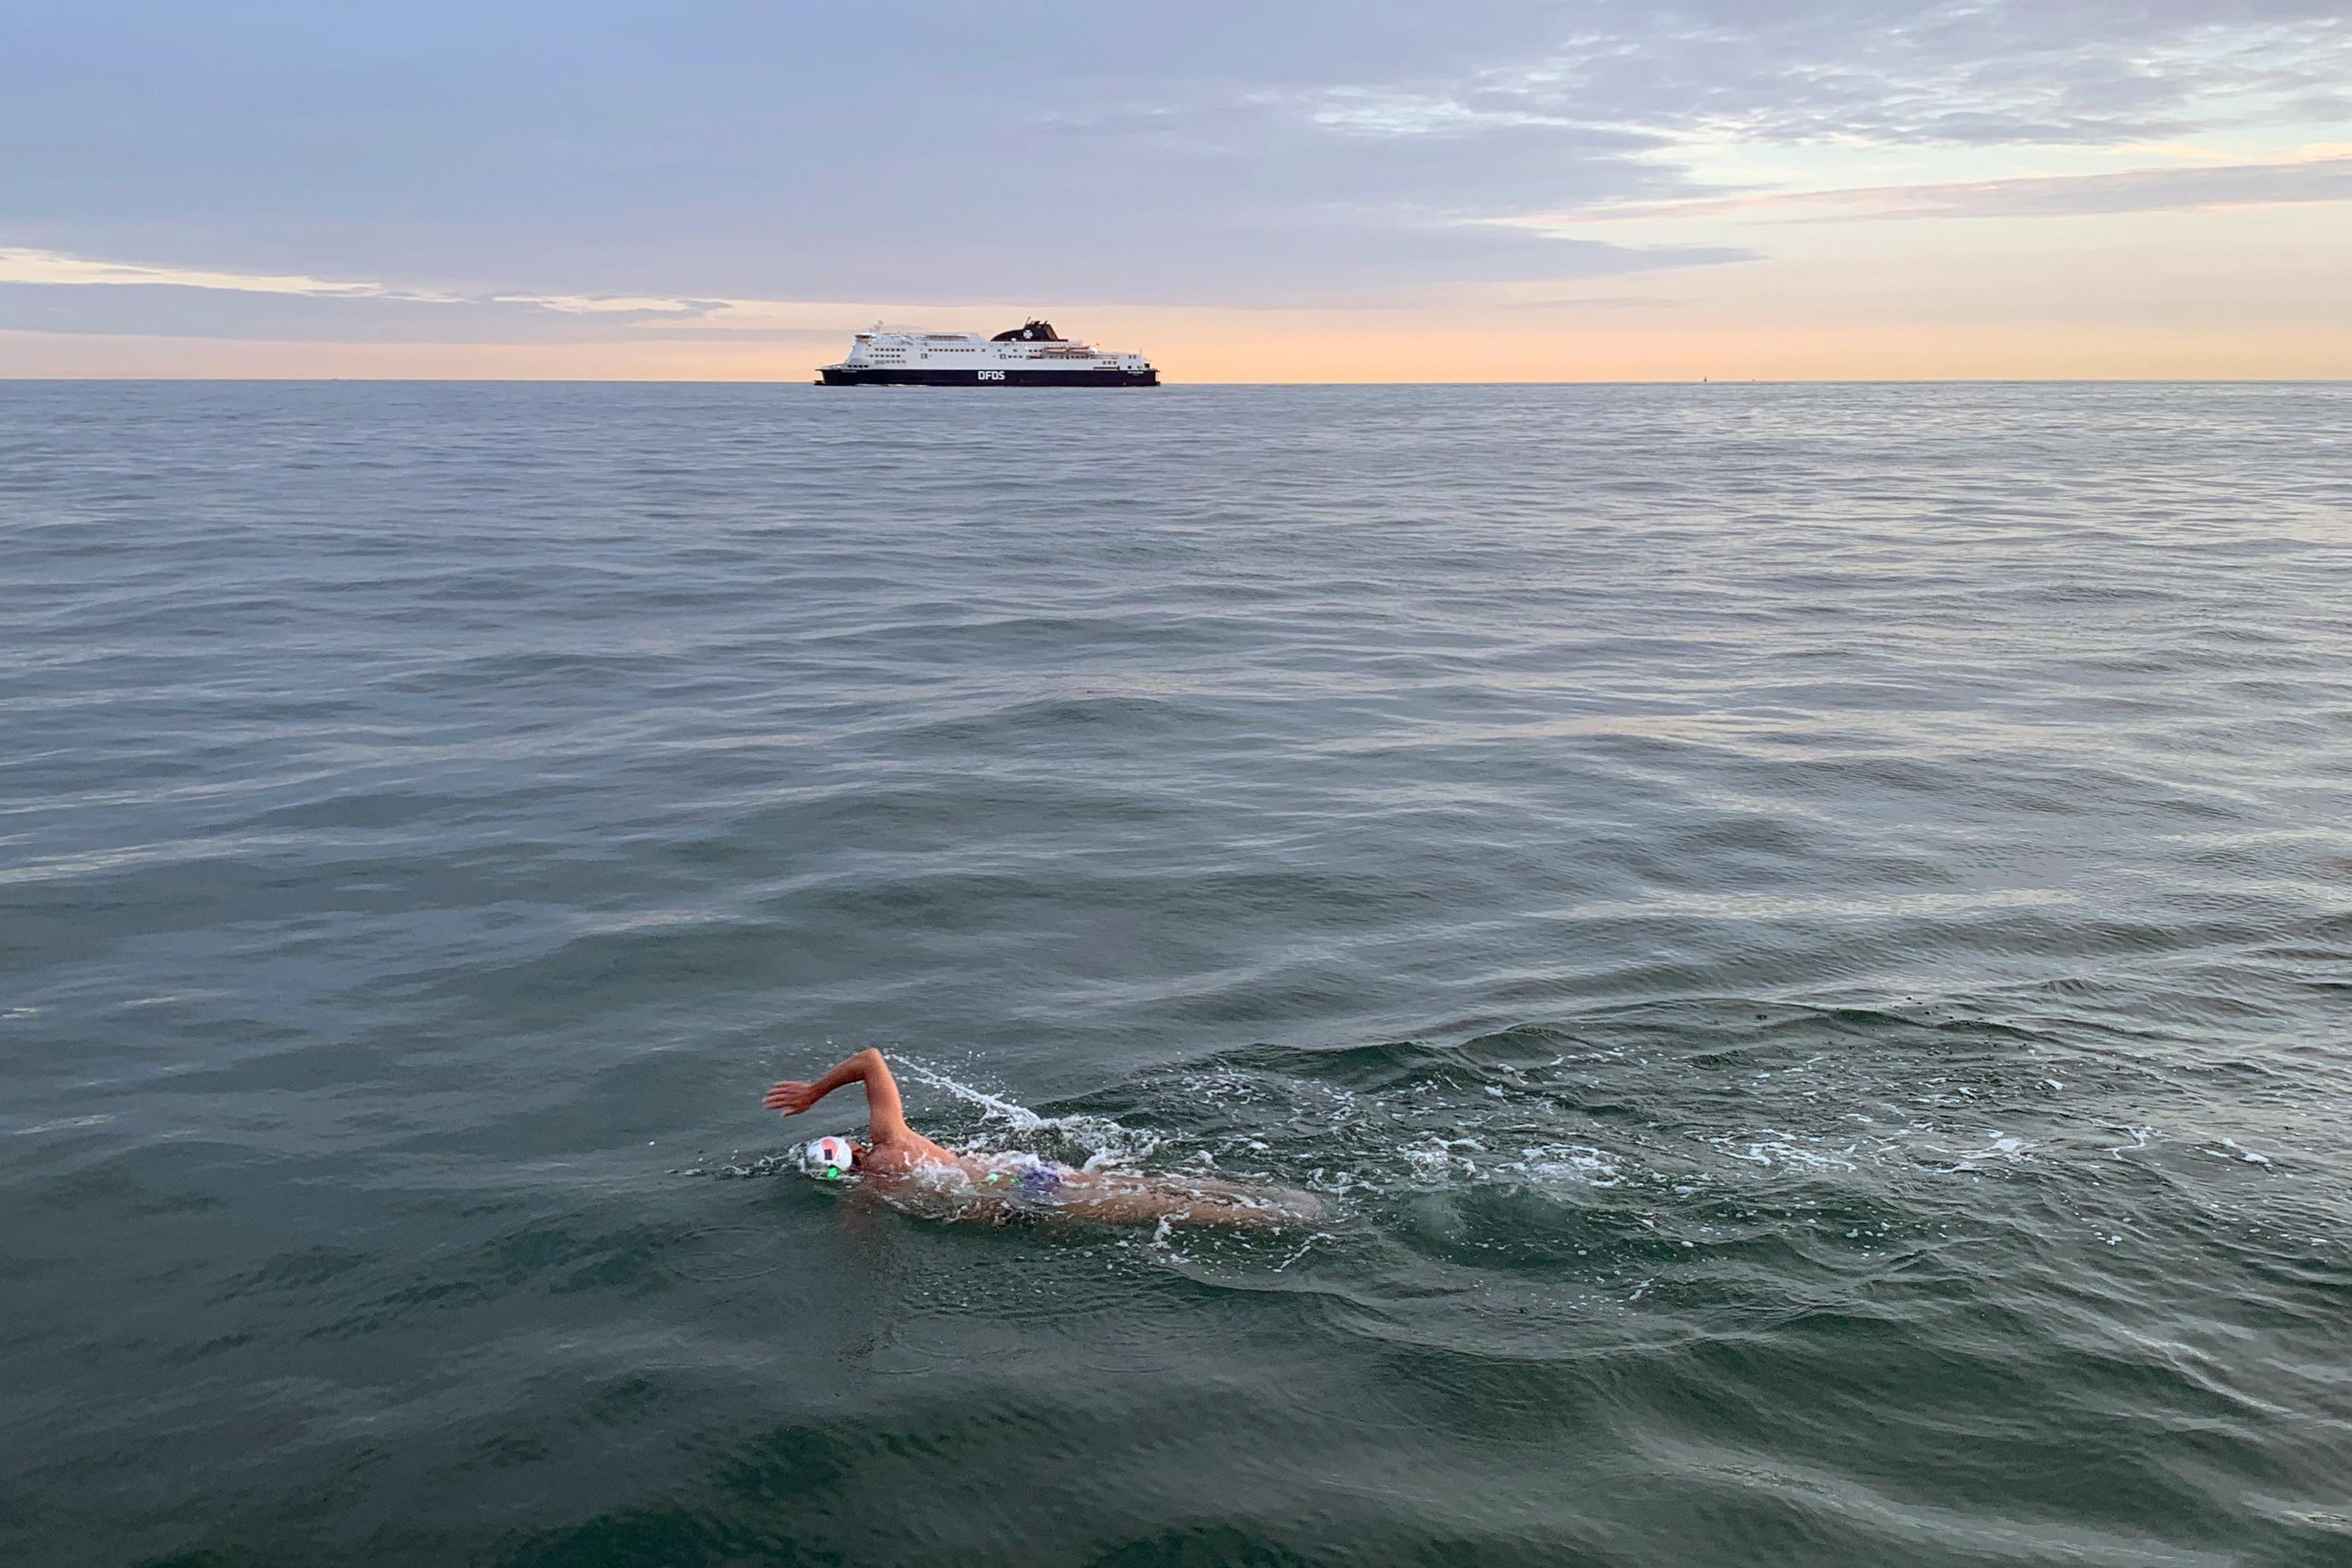 This July 9, 2019, photo provided by Caroline Gleich shows Rob Lea swimming the English Channel, from England to France. Lea climbed Mount Everest, swam across the English Channel and biked from one American coast to the other in a six-month span. (Caroline Gleich via AP)